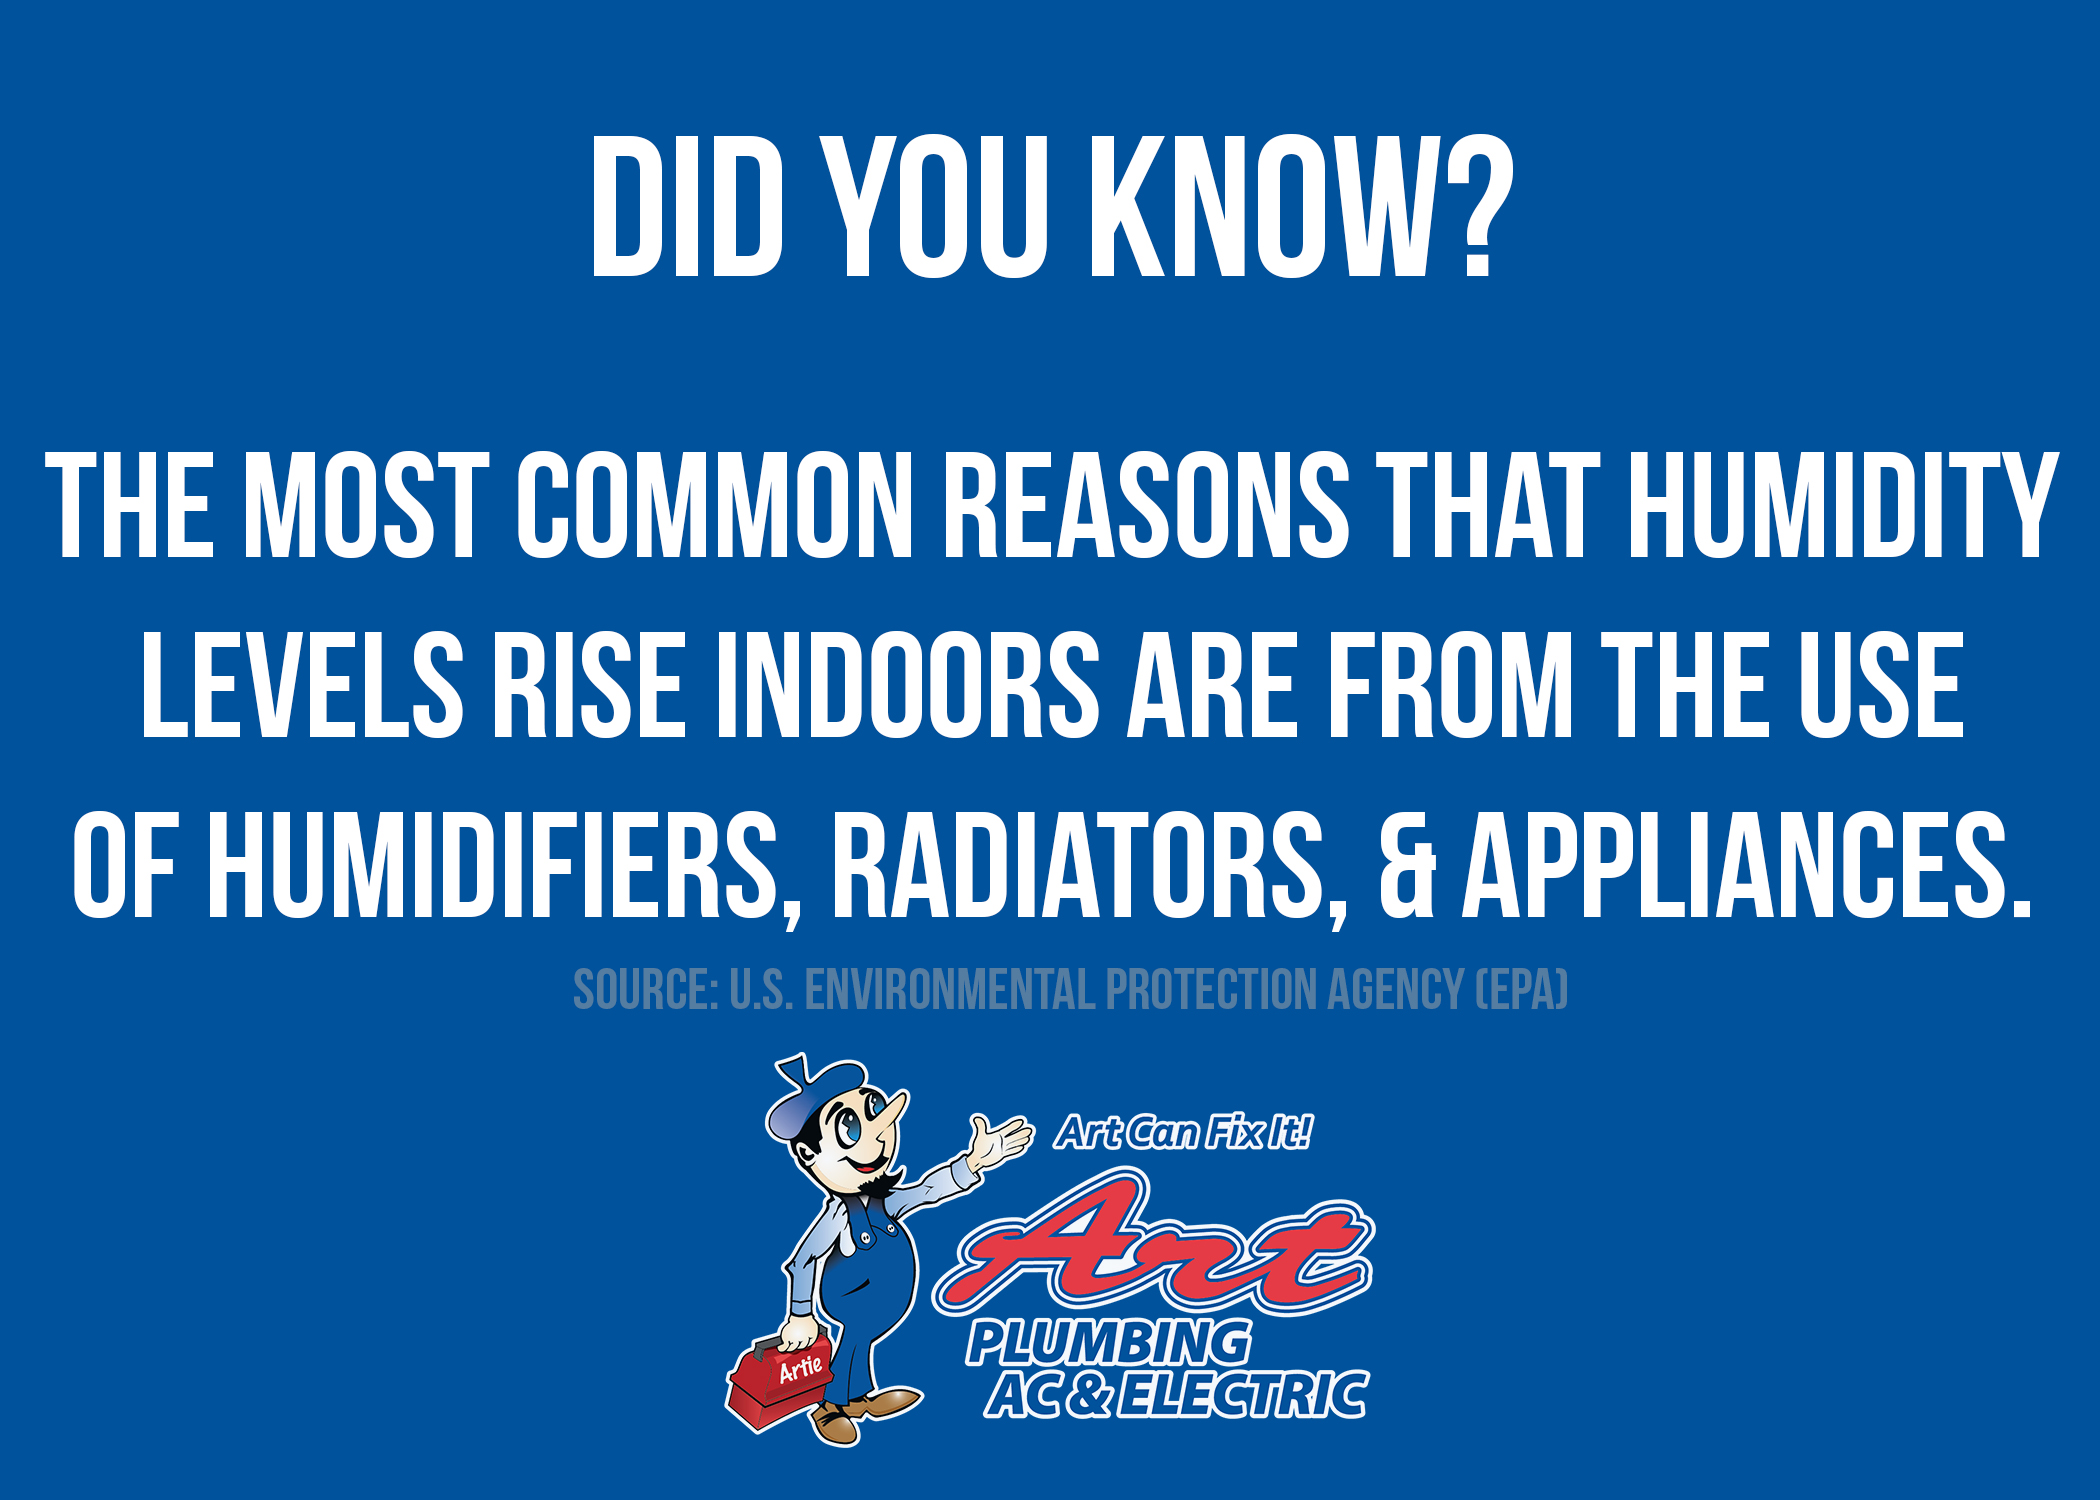 Did You Know The Most Common Reasons Humidity Levels Rise